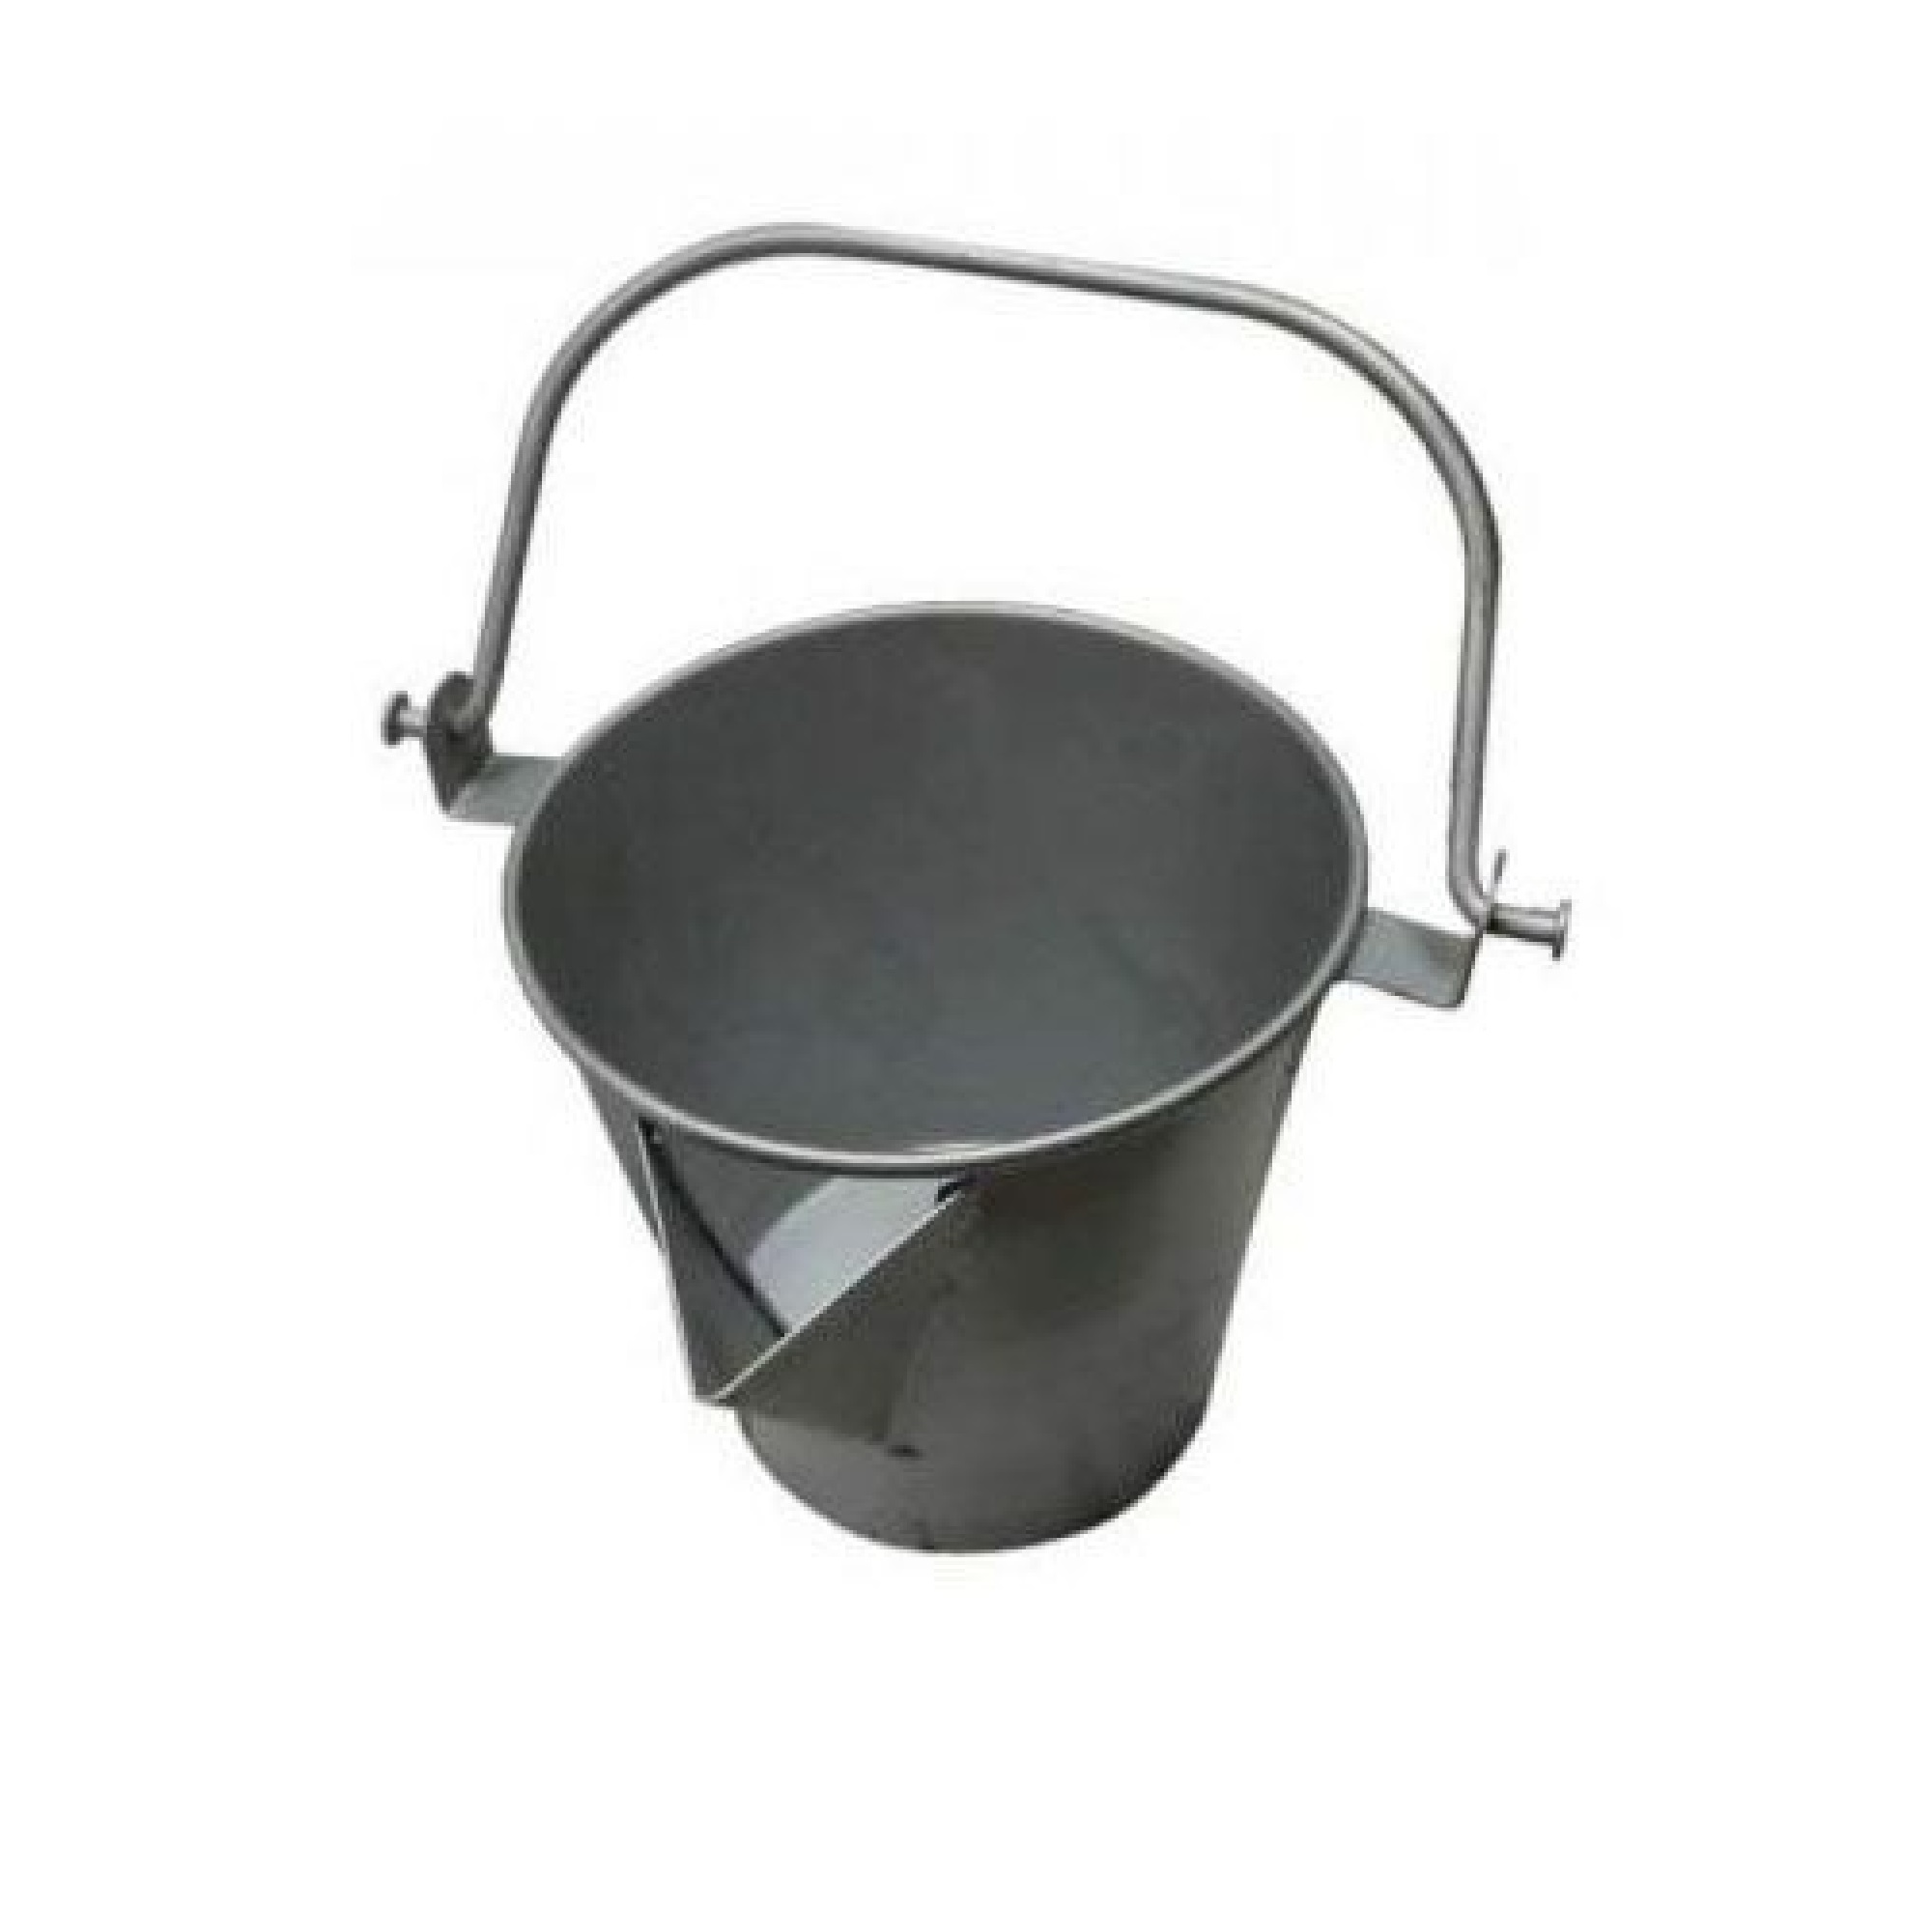 Steel bucket with 'V' pouring lip and handle for use with asphalt on a white background